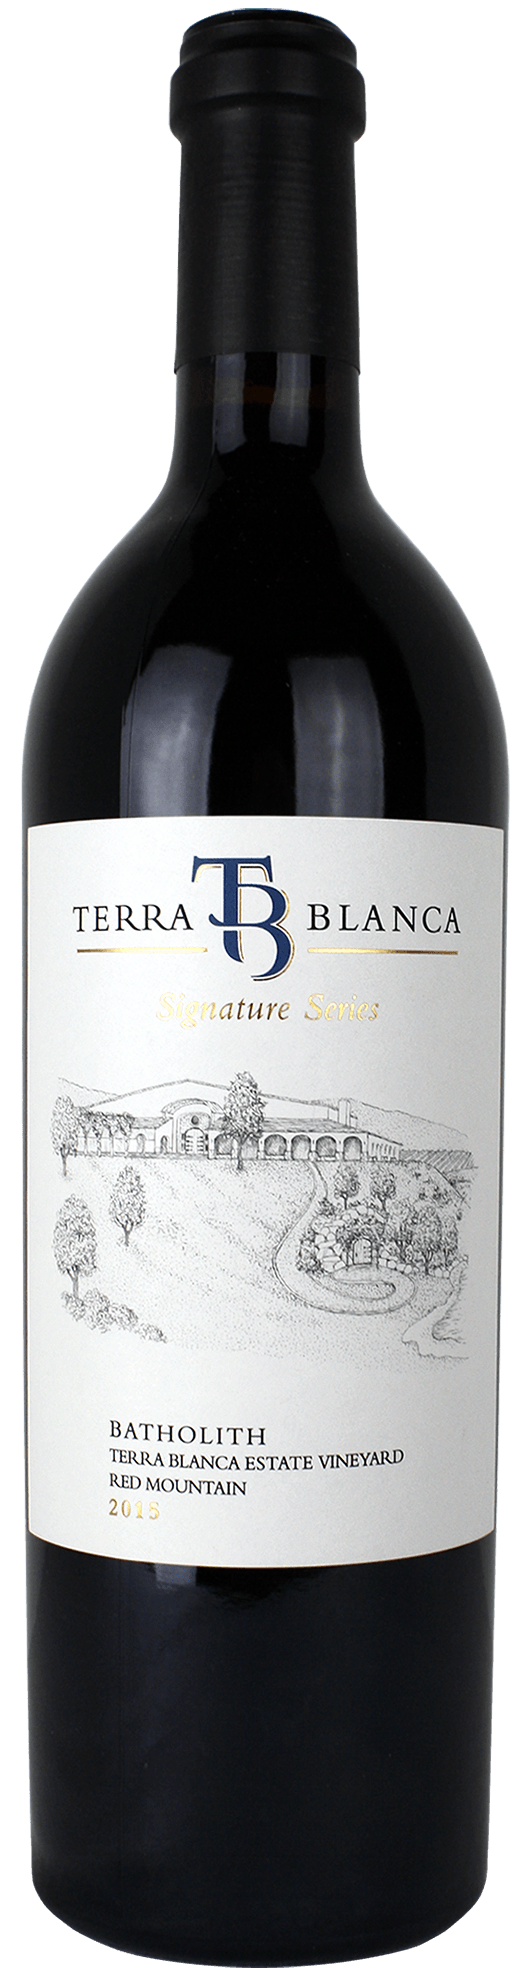 15SSBatholith - Terra Blanca – White Earth. Blue Skies. Red Mountain.